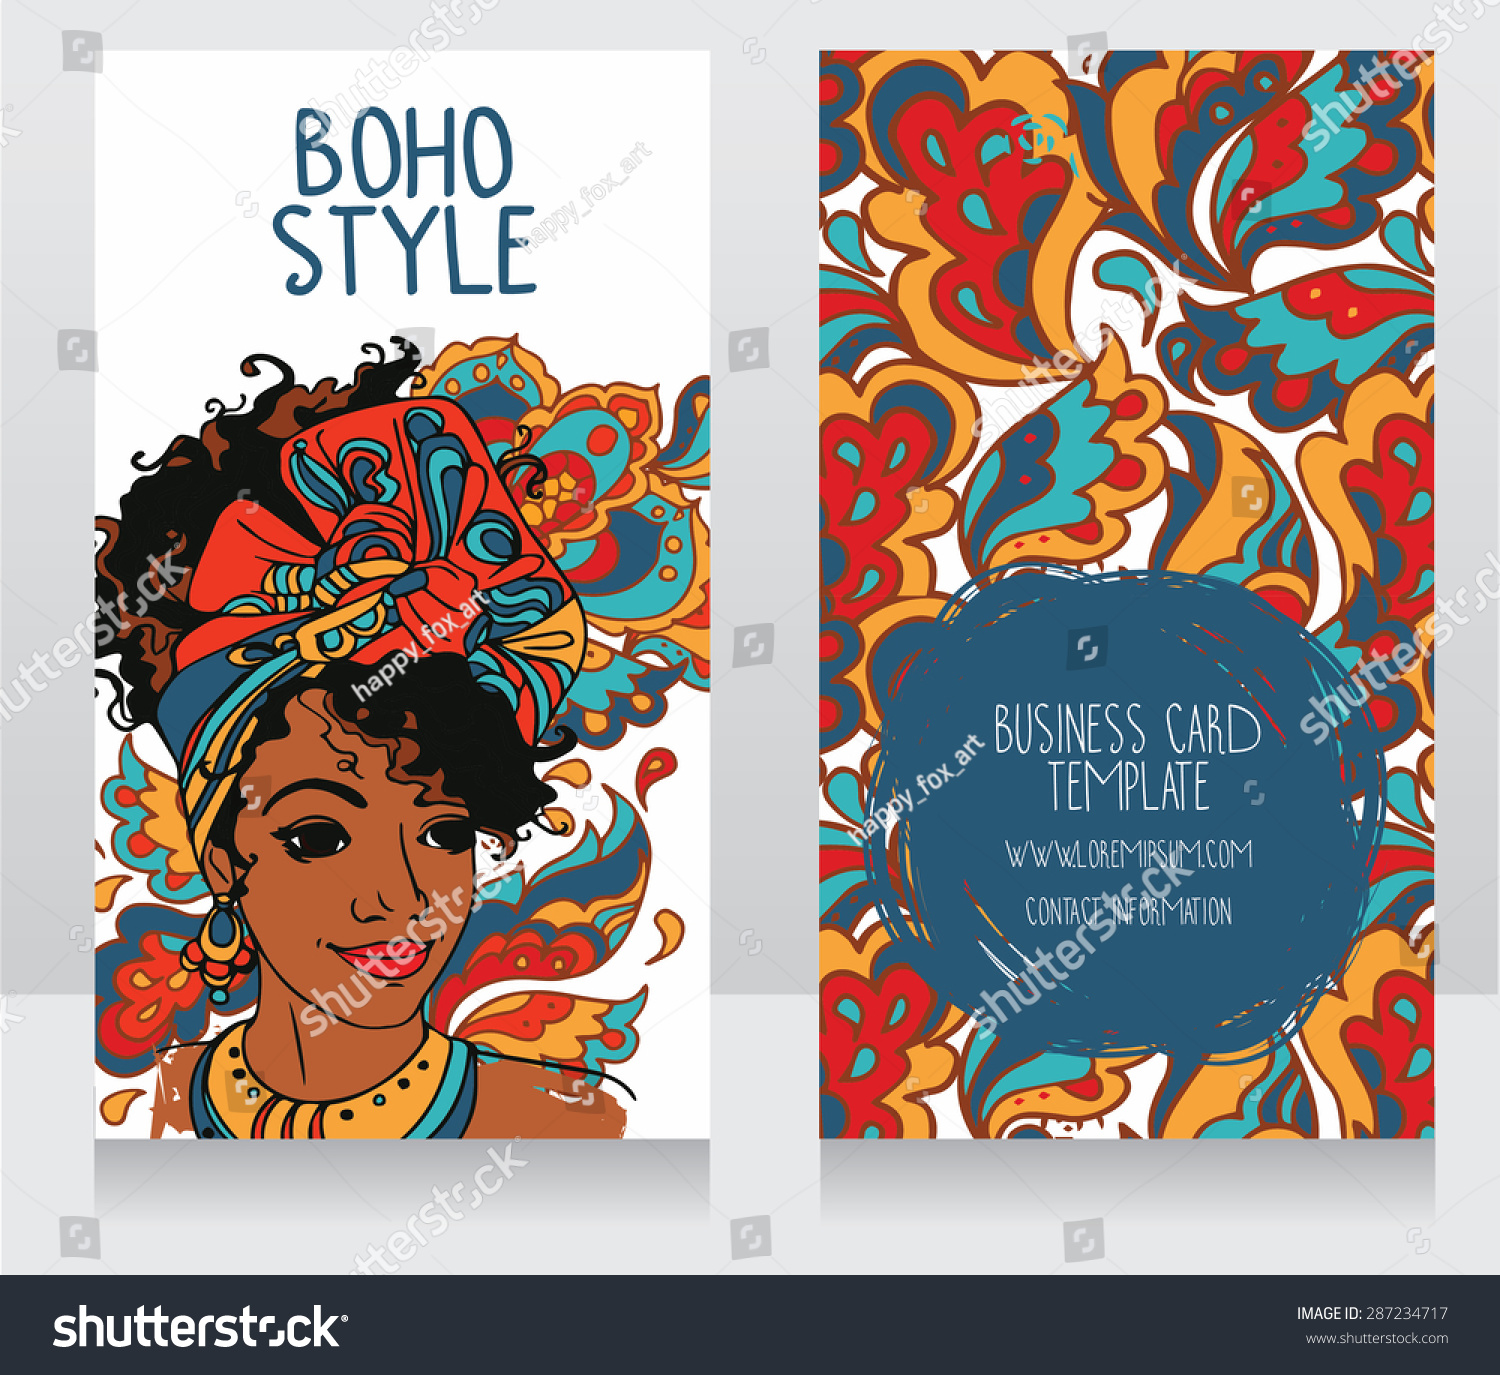 Cards boho style beautiful african american stock vector 287234717 cards for boho style with beautiful african american woman can be used as banners for kristyandbryce Image collections